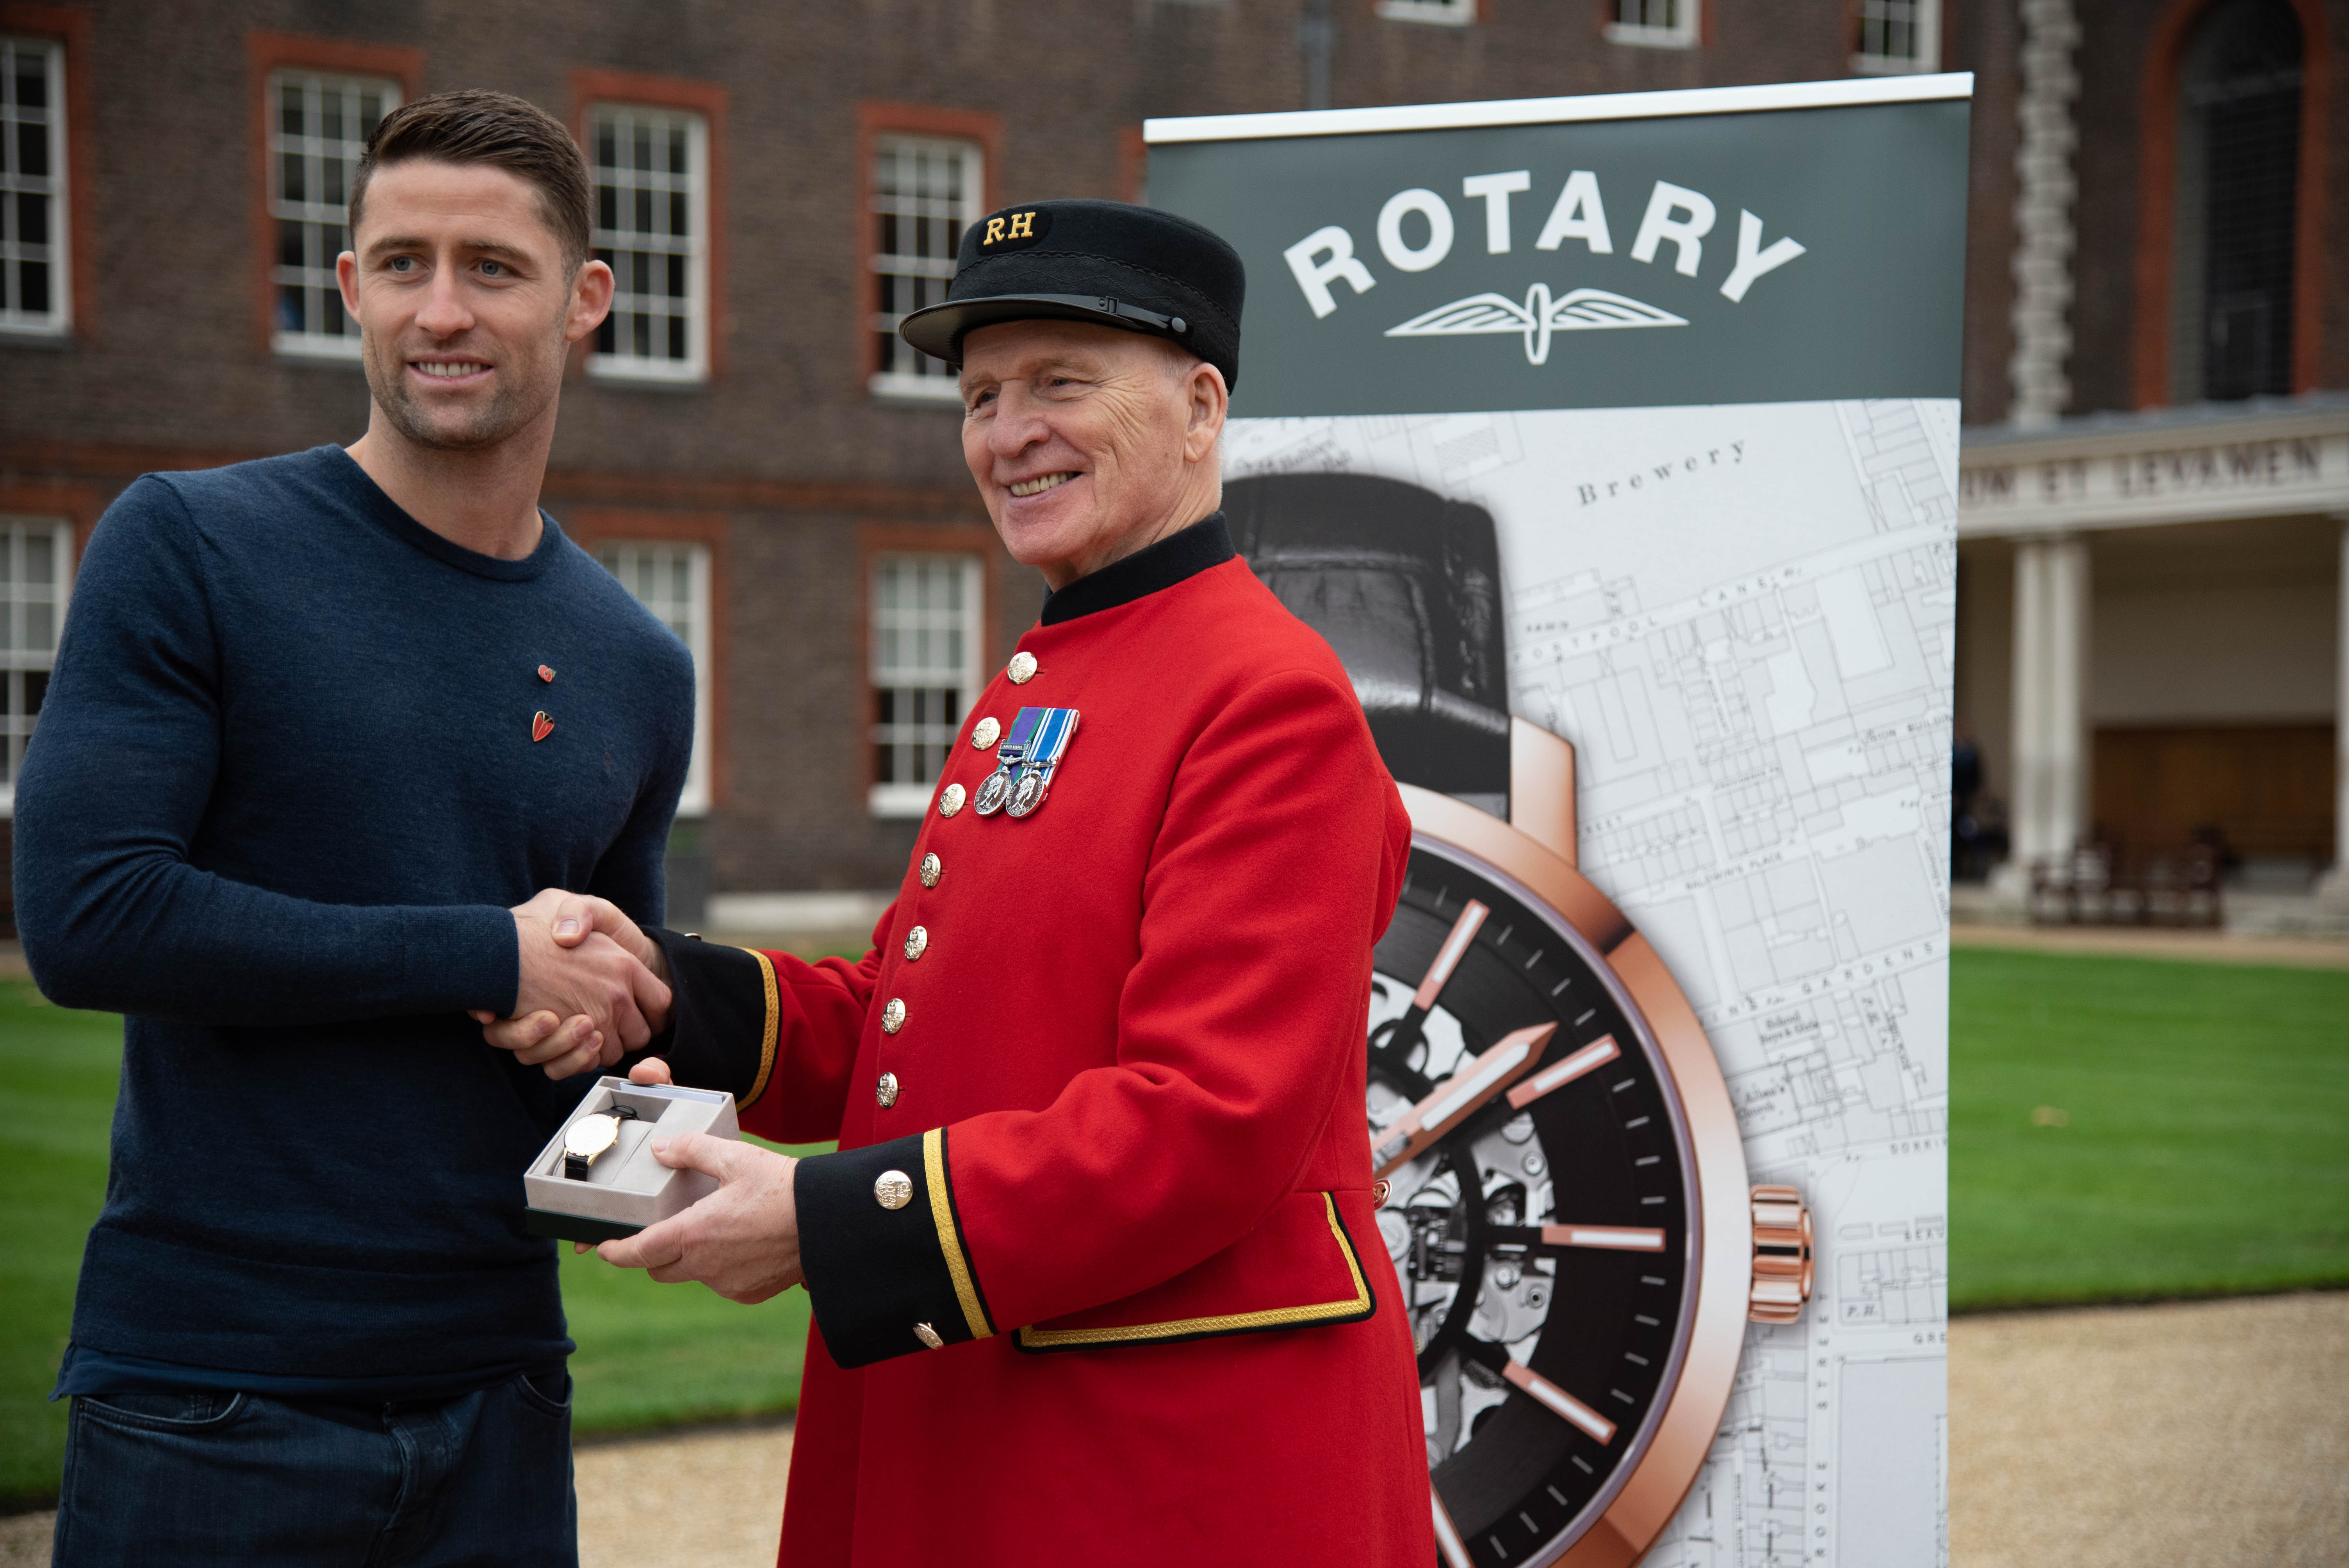 Gary presenting Rotary watch to Chelsea Pensioner